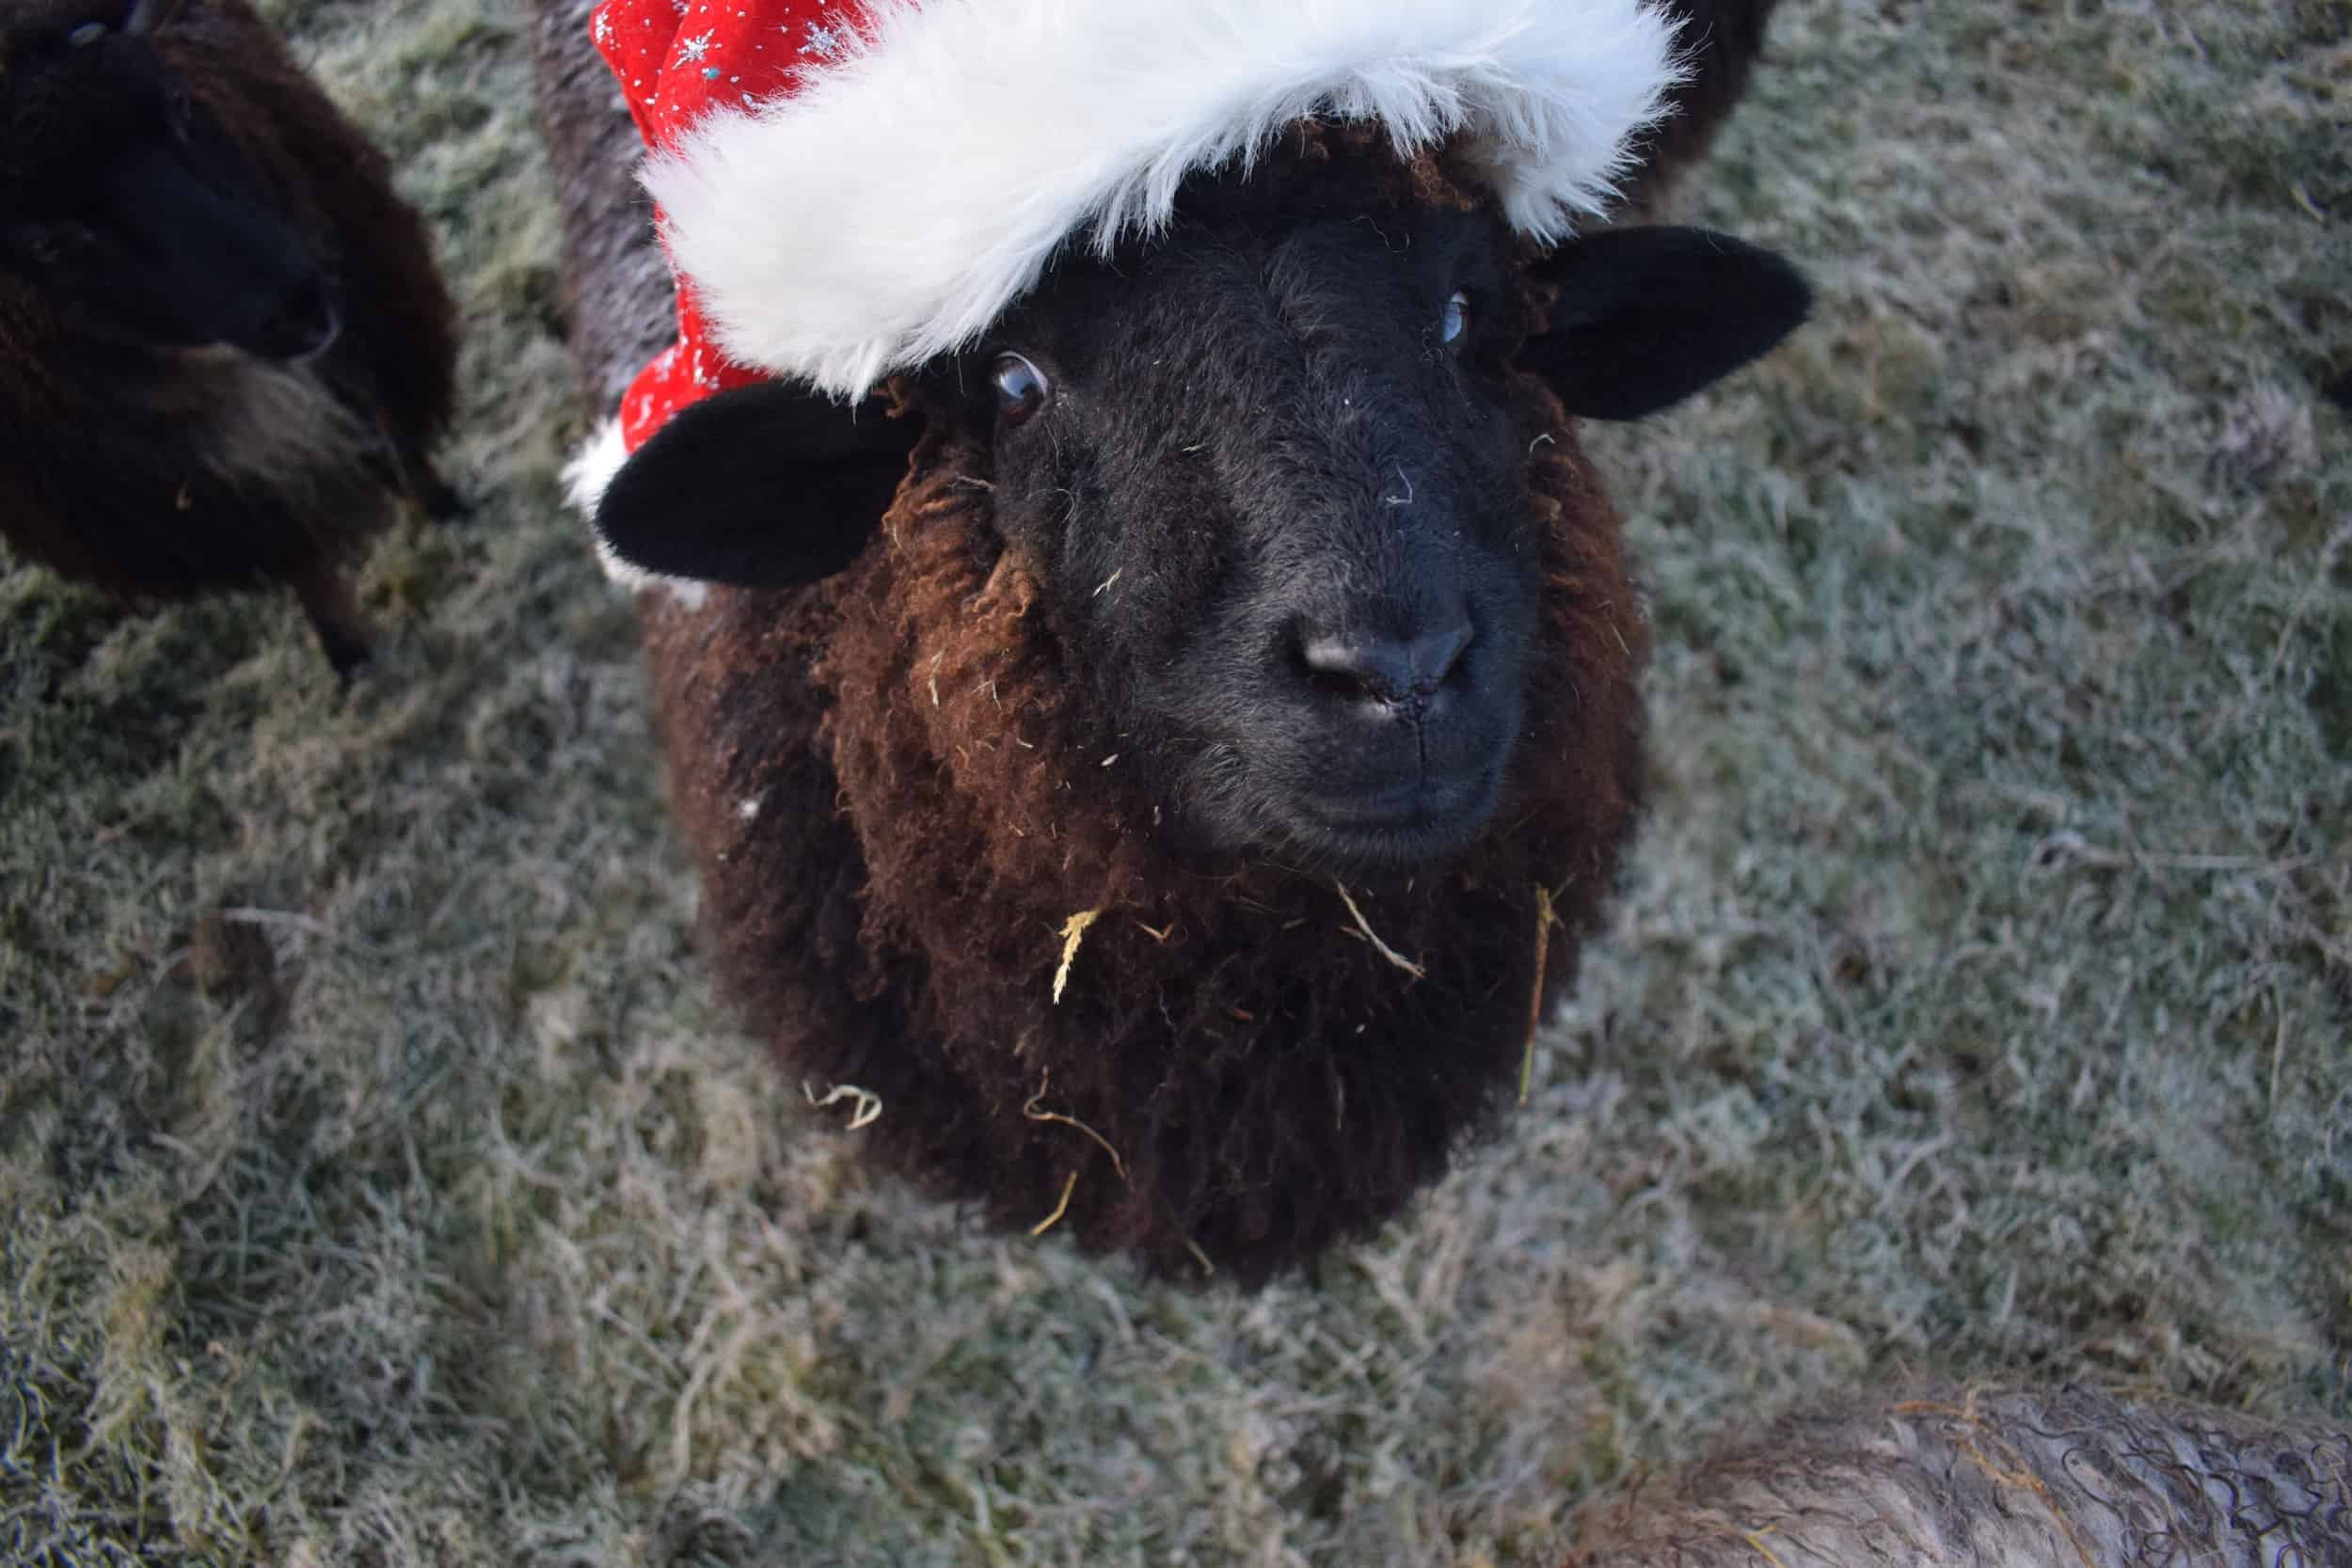 Spot santa hat xmas valais blacknose cross zwables texel sheep pet sheep ethical sustainable wool gifts patchwork sheep black